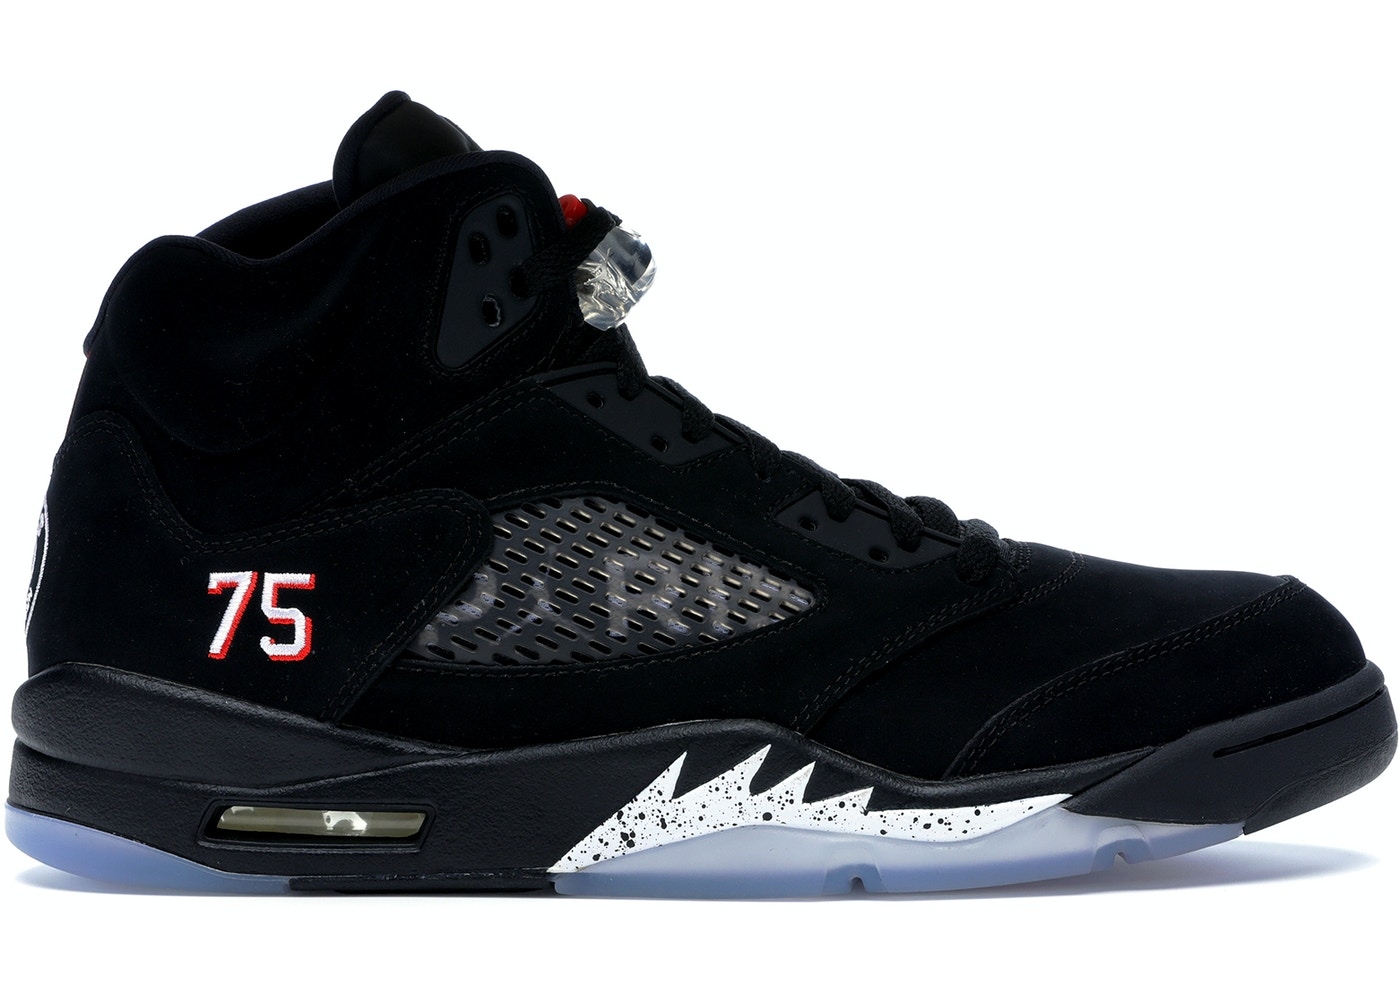 b32a4dd41eb7 Jordan 5 Retro Paris Saint-Germain - AV9175-001